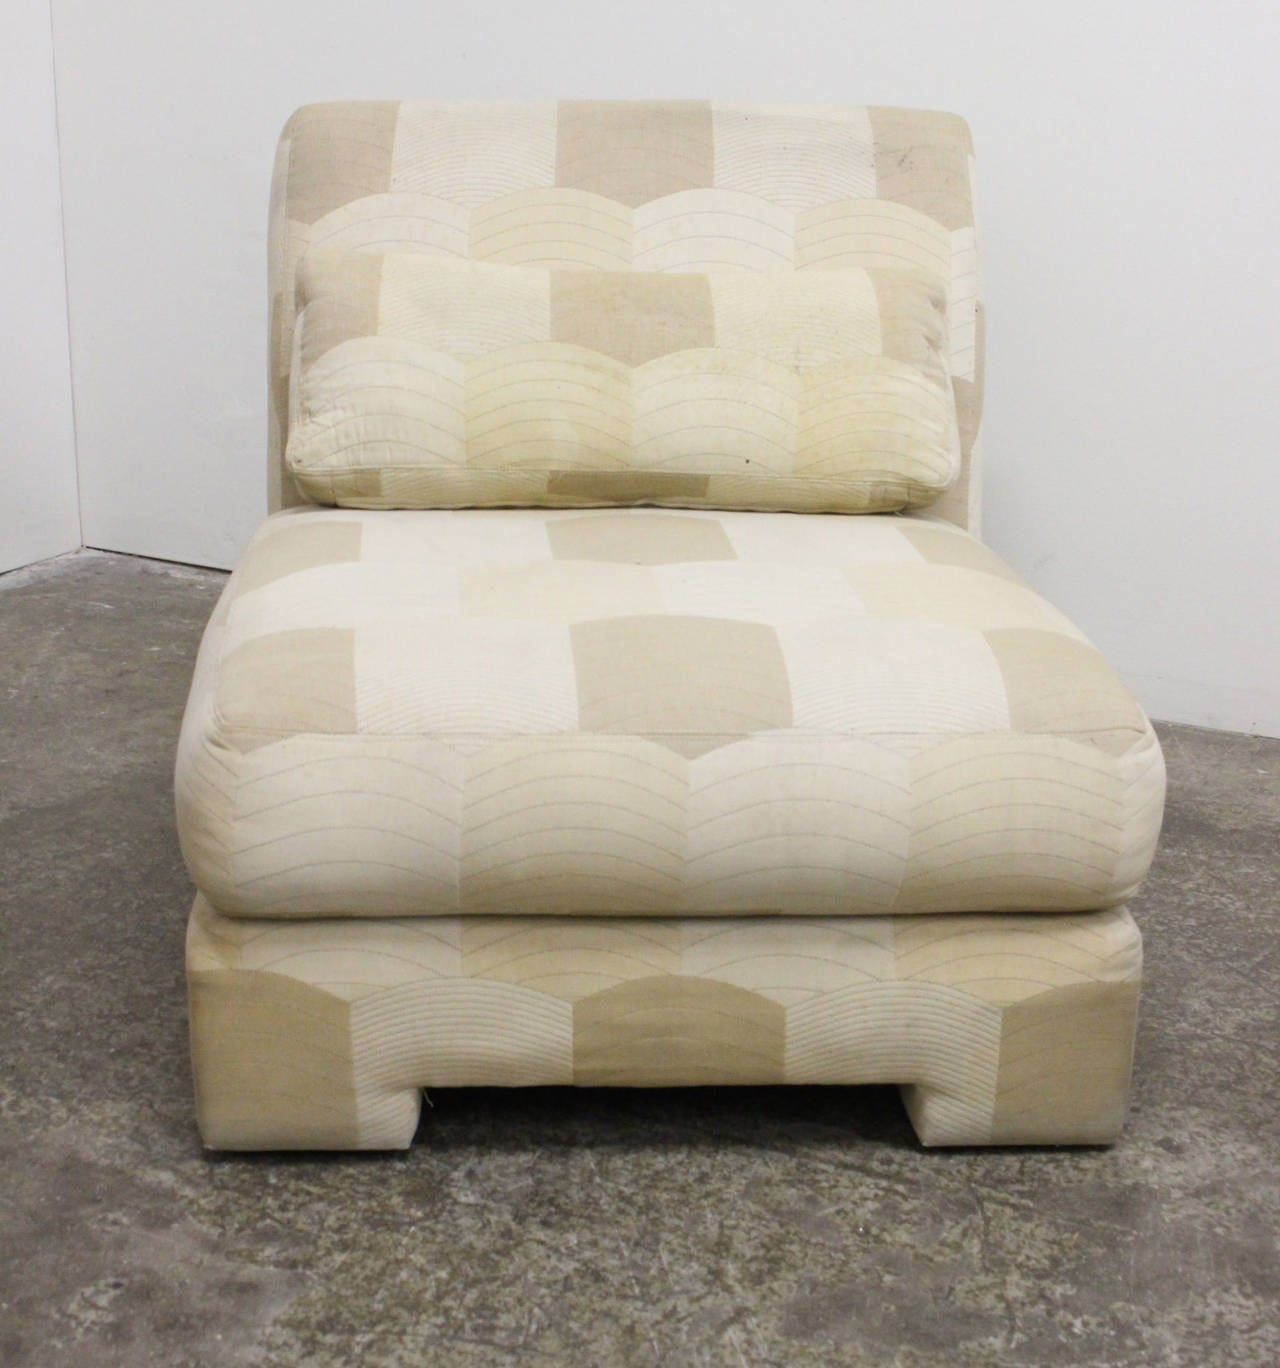 Pair of Slipper Lounge Chairs by Milo Baughman for Thayer Coggin In Good Condition For Sale In Dallas, TX